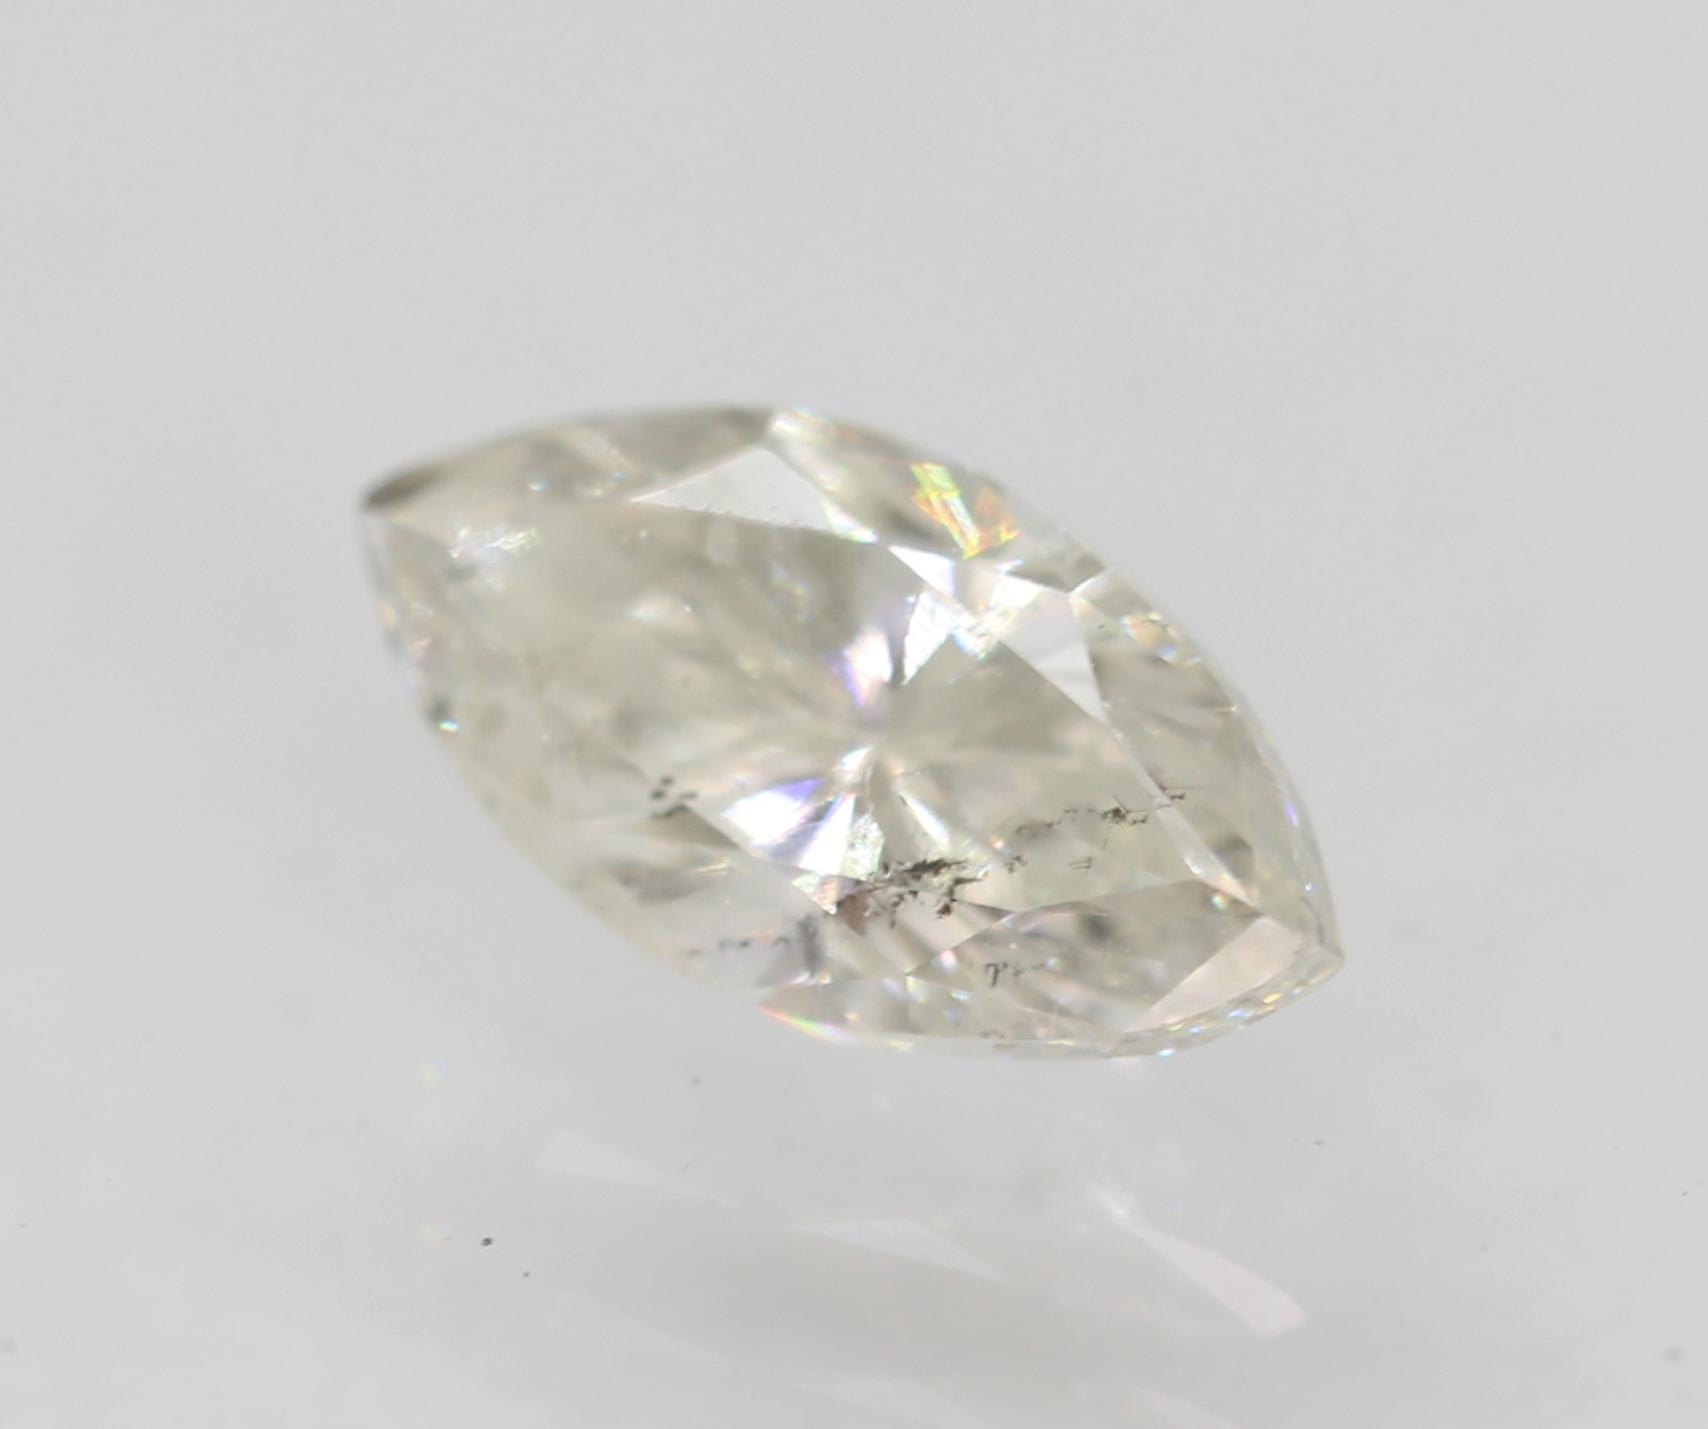 Certified 0.51 Carat G SI1 Marquise Enhanced Natural Loose Diamond 7.17x3.7m 2VG